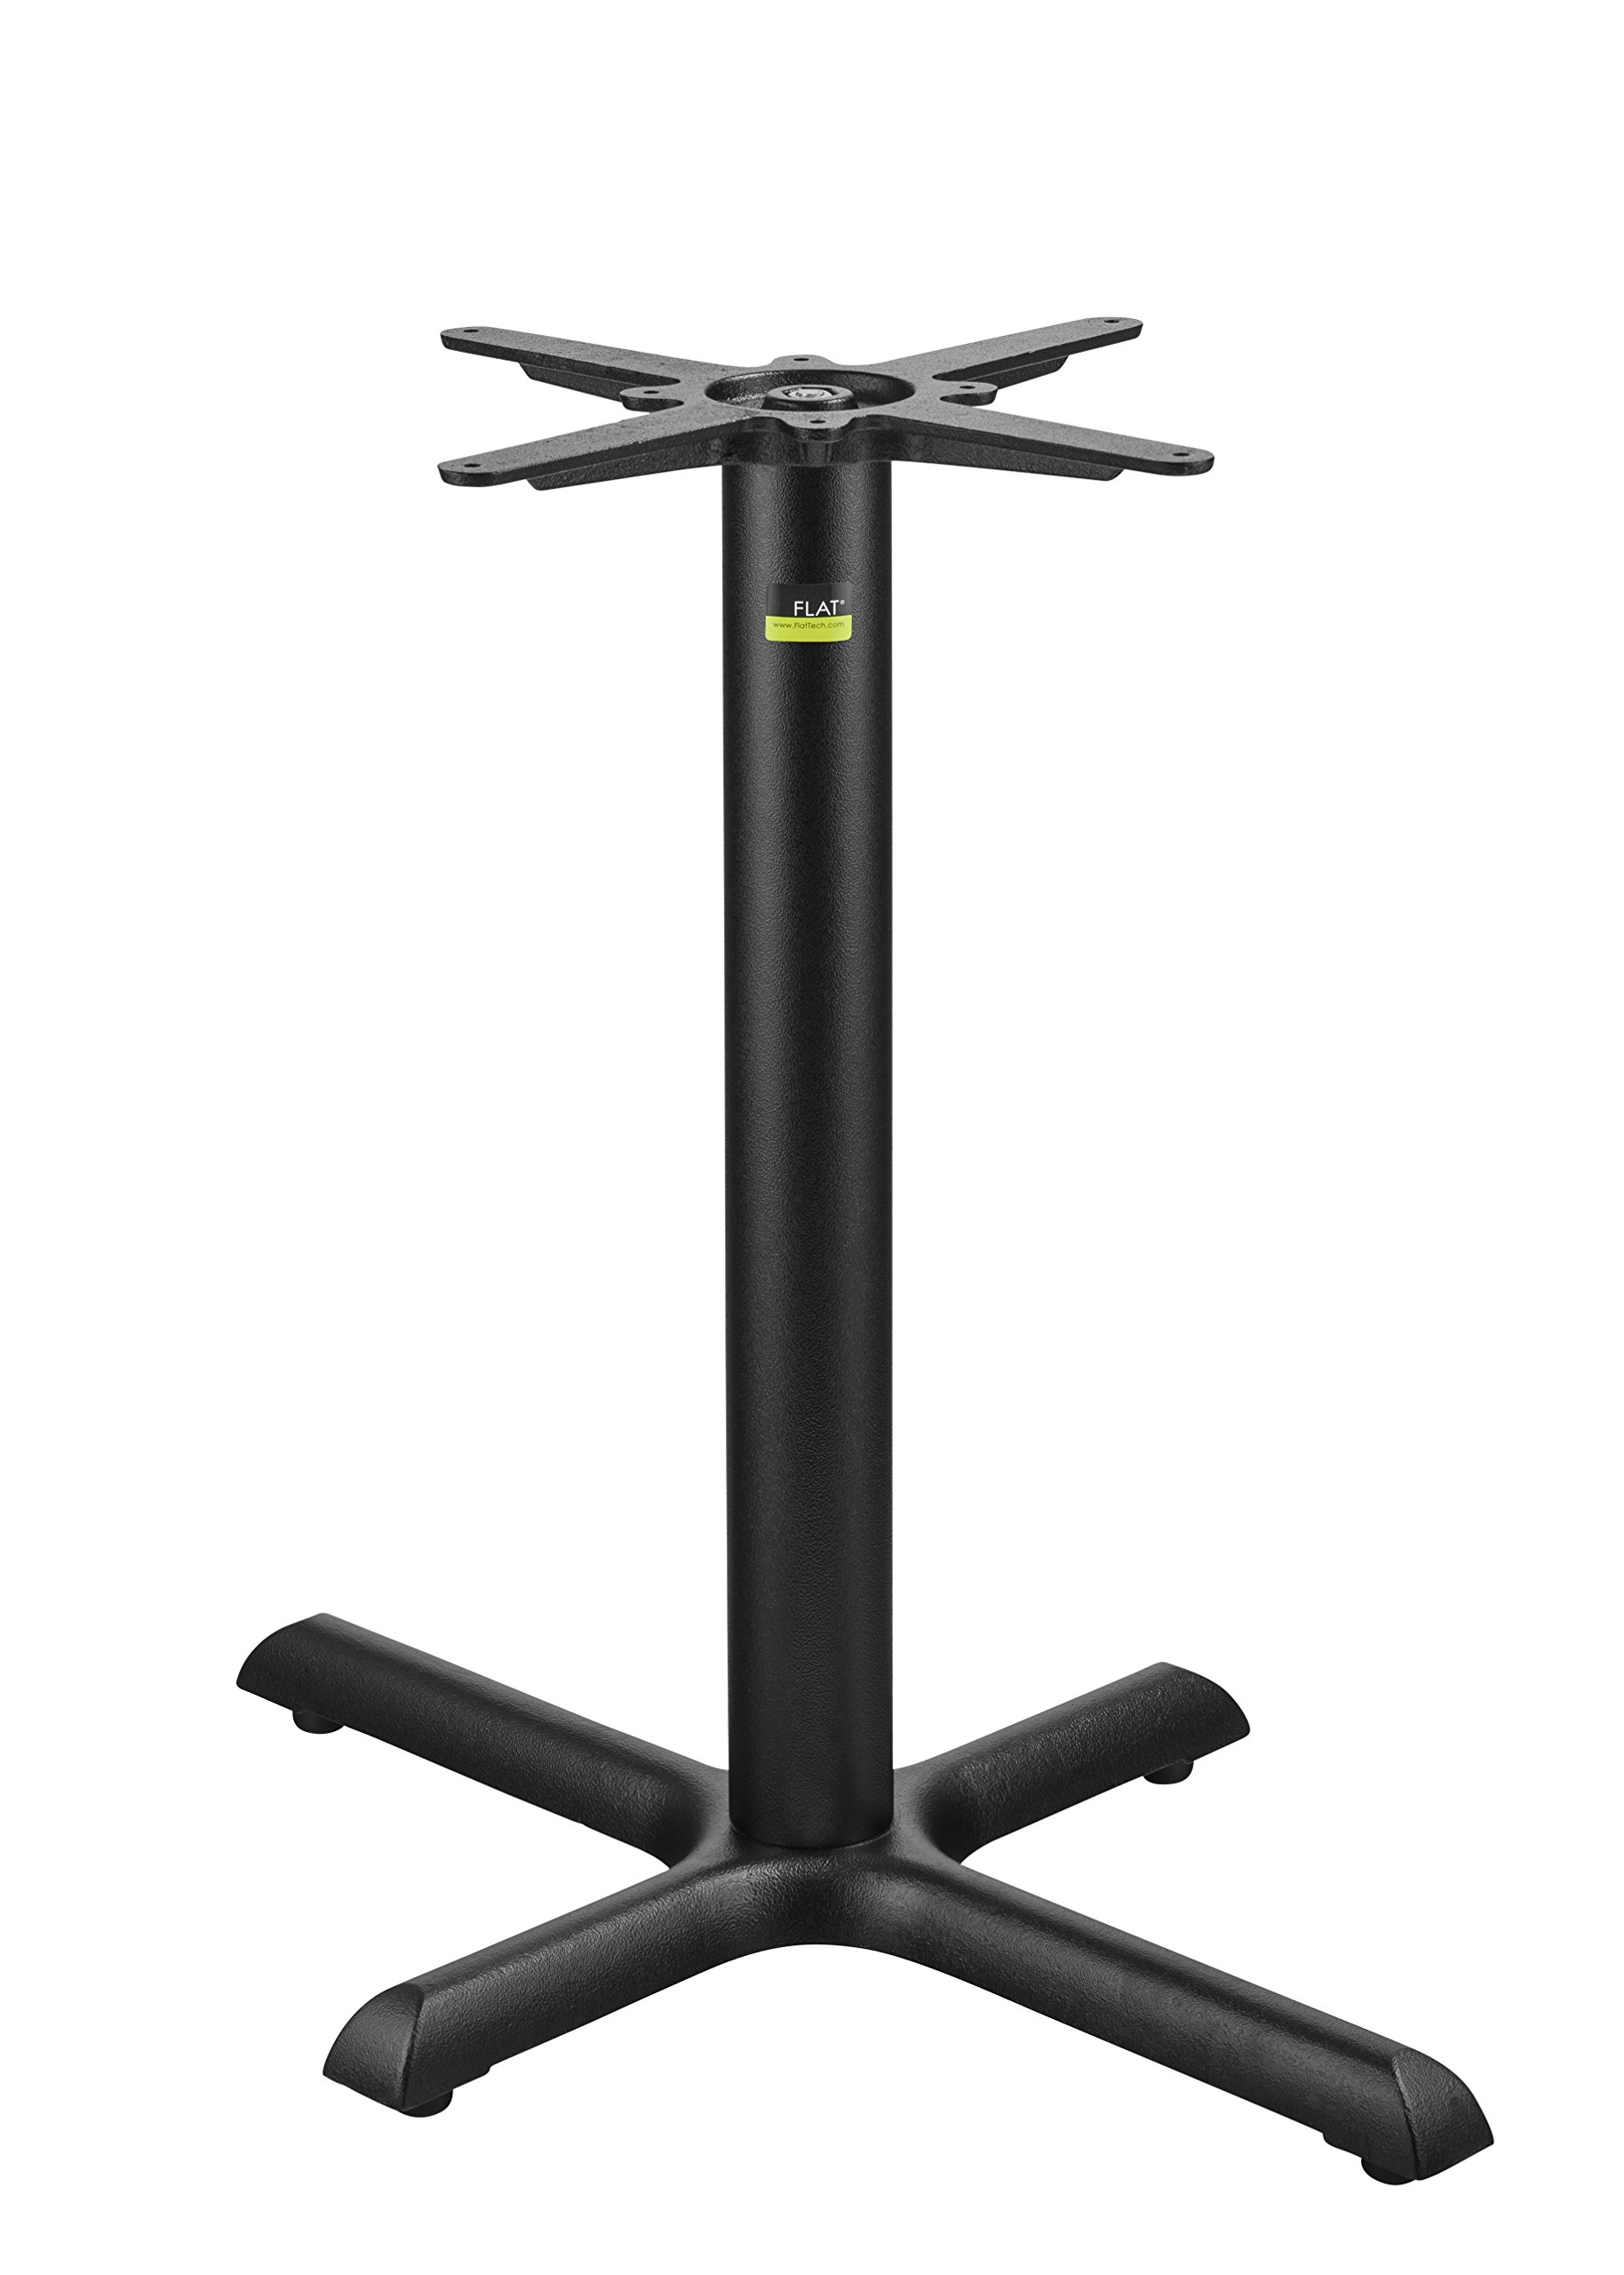 FLAT Self-Stabilizing KX2230 (22'' X 30''), Cast Iron, Dining Height Table Base